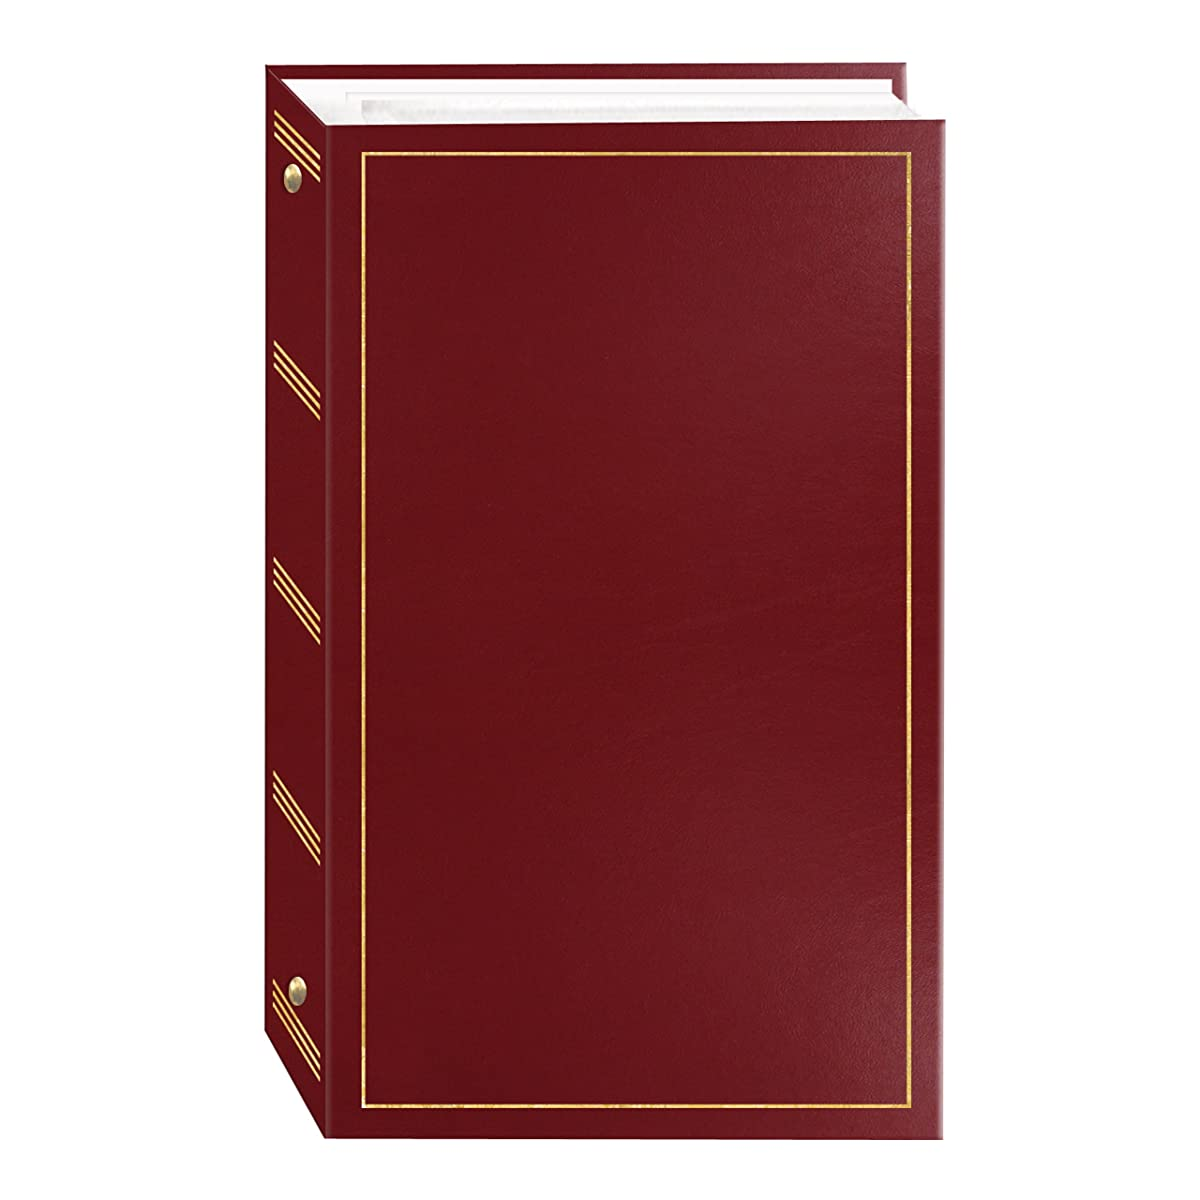 3-Ring Photo Album 204 Pockets Hold 4x6 Photos, Burgundy Red